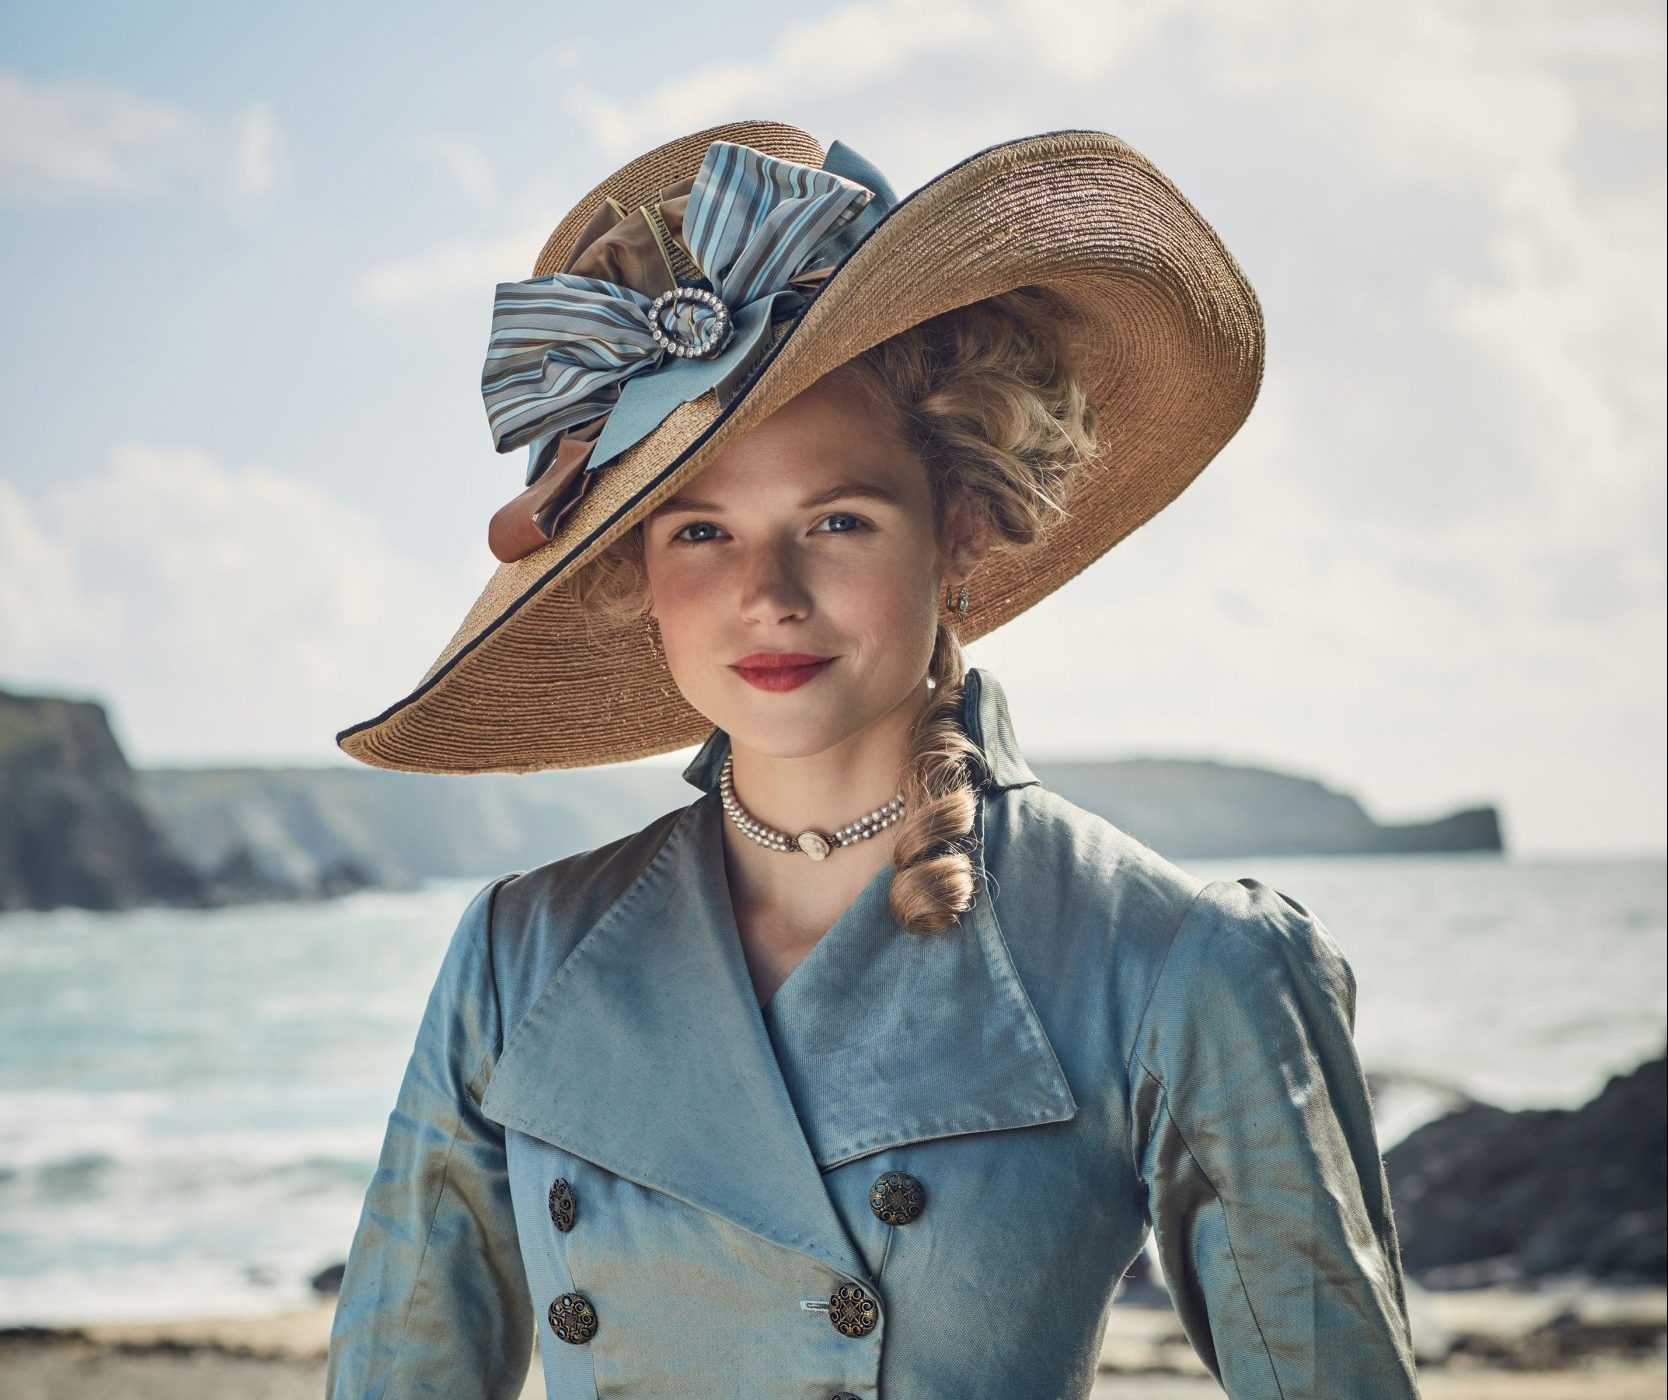 Poldark spoilers: Enys and Caroline to go through 'tough' period after revealing baby news